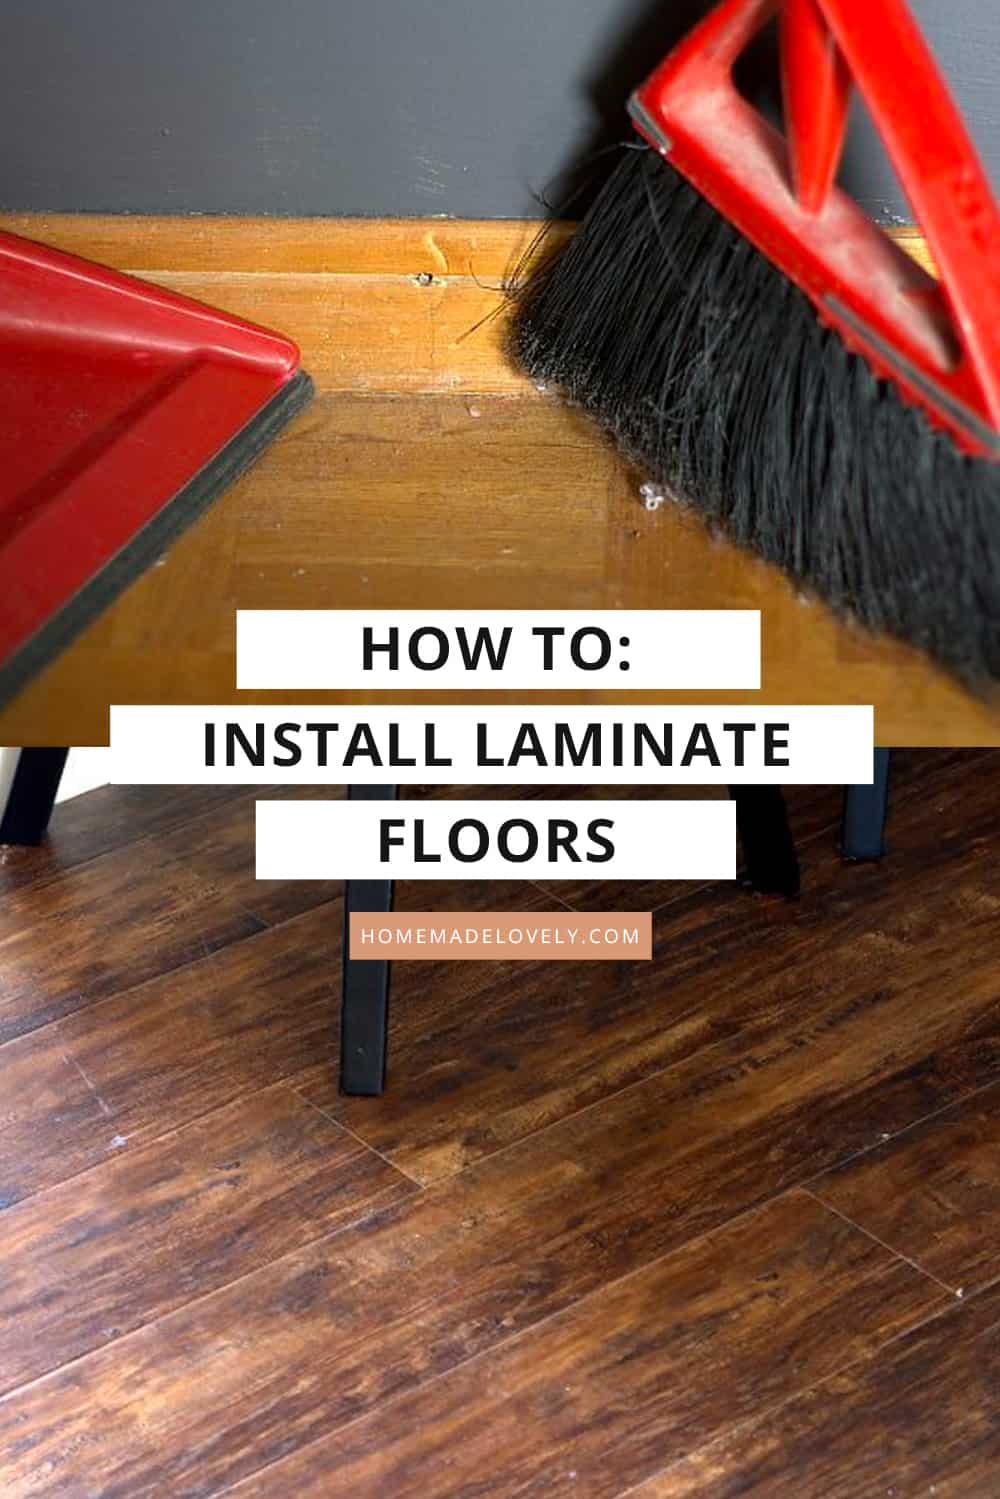 image showing before and after laminate flooring install with text overly